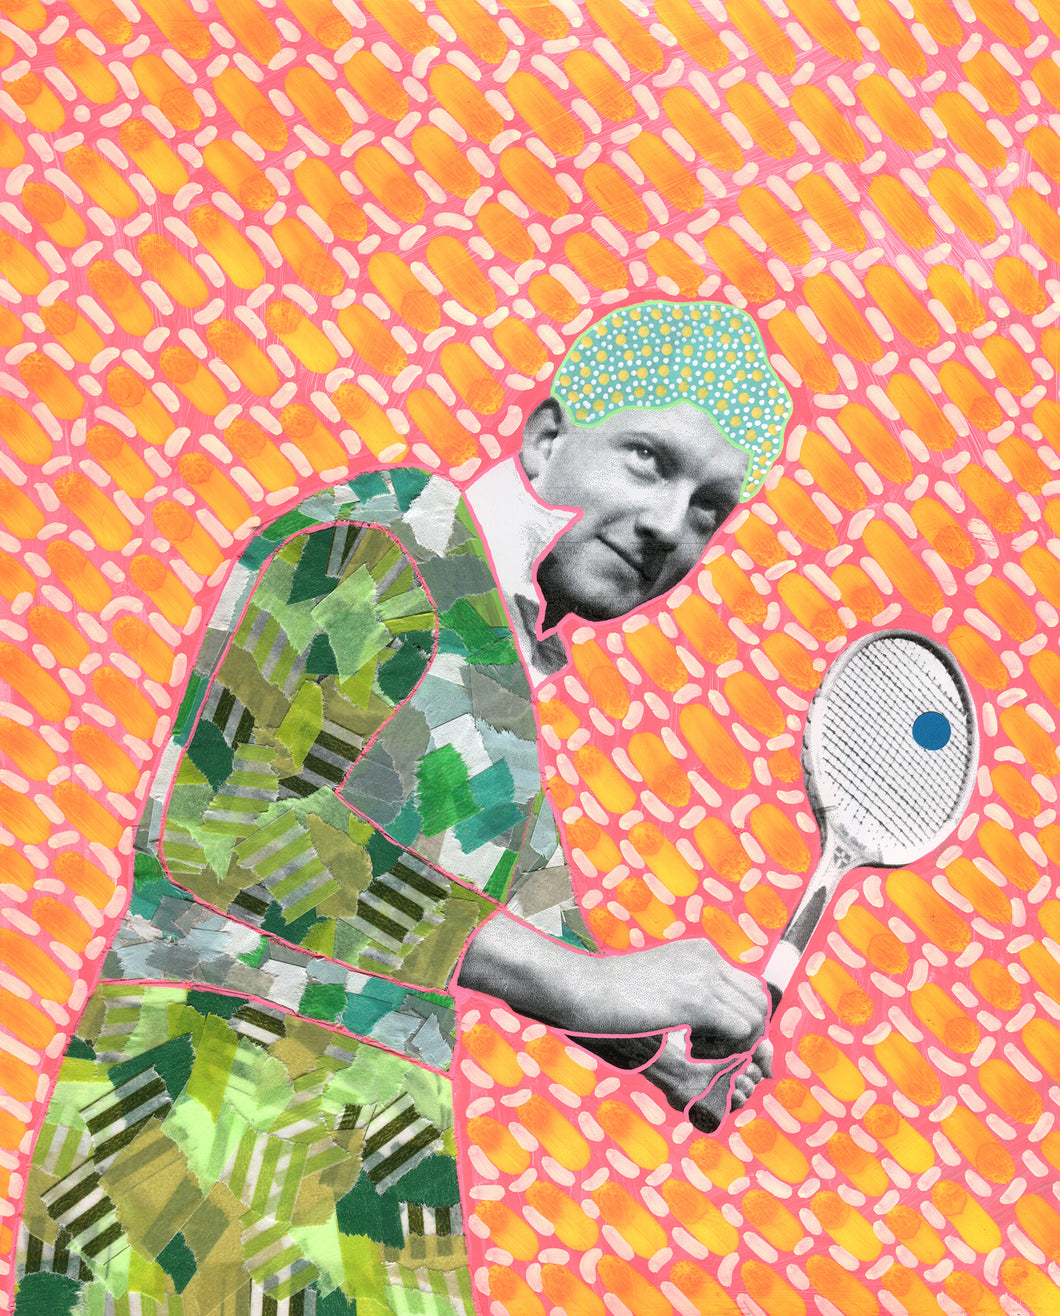 Original Old Fashioned Tennis Photo Altered By Hand - Naomi Vona Art